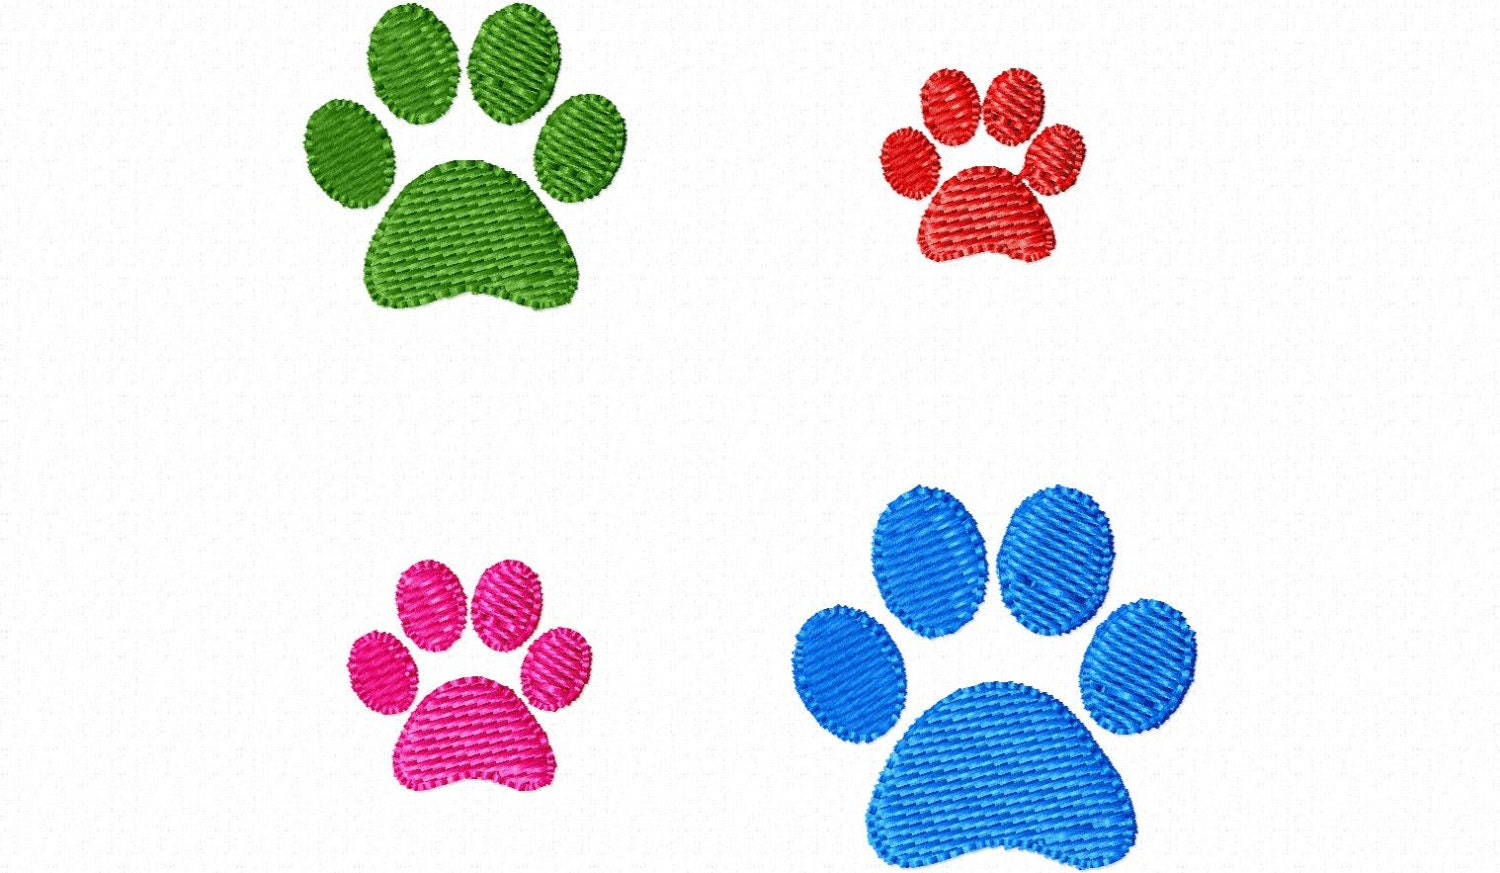 Embroidery Design Free Software Download